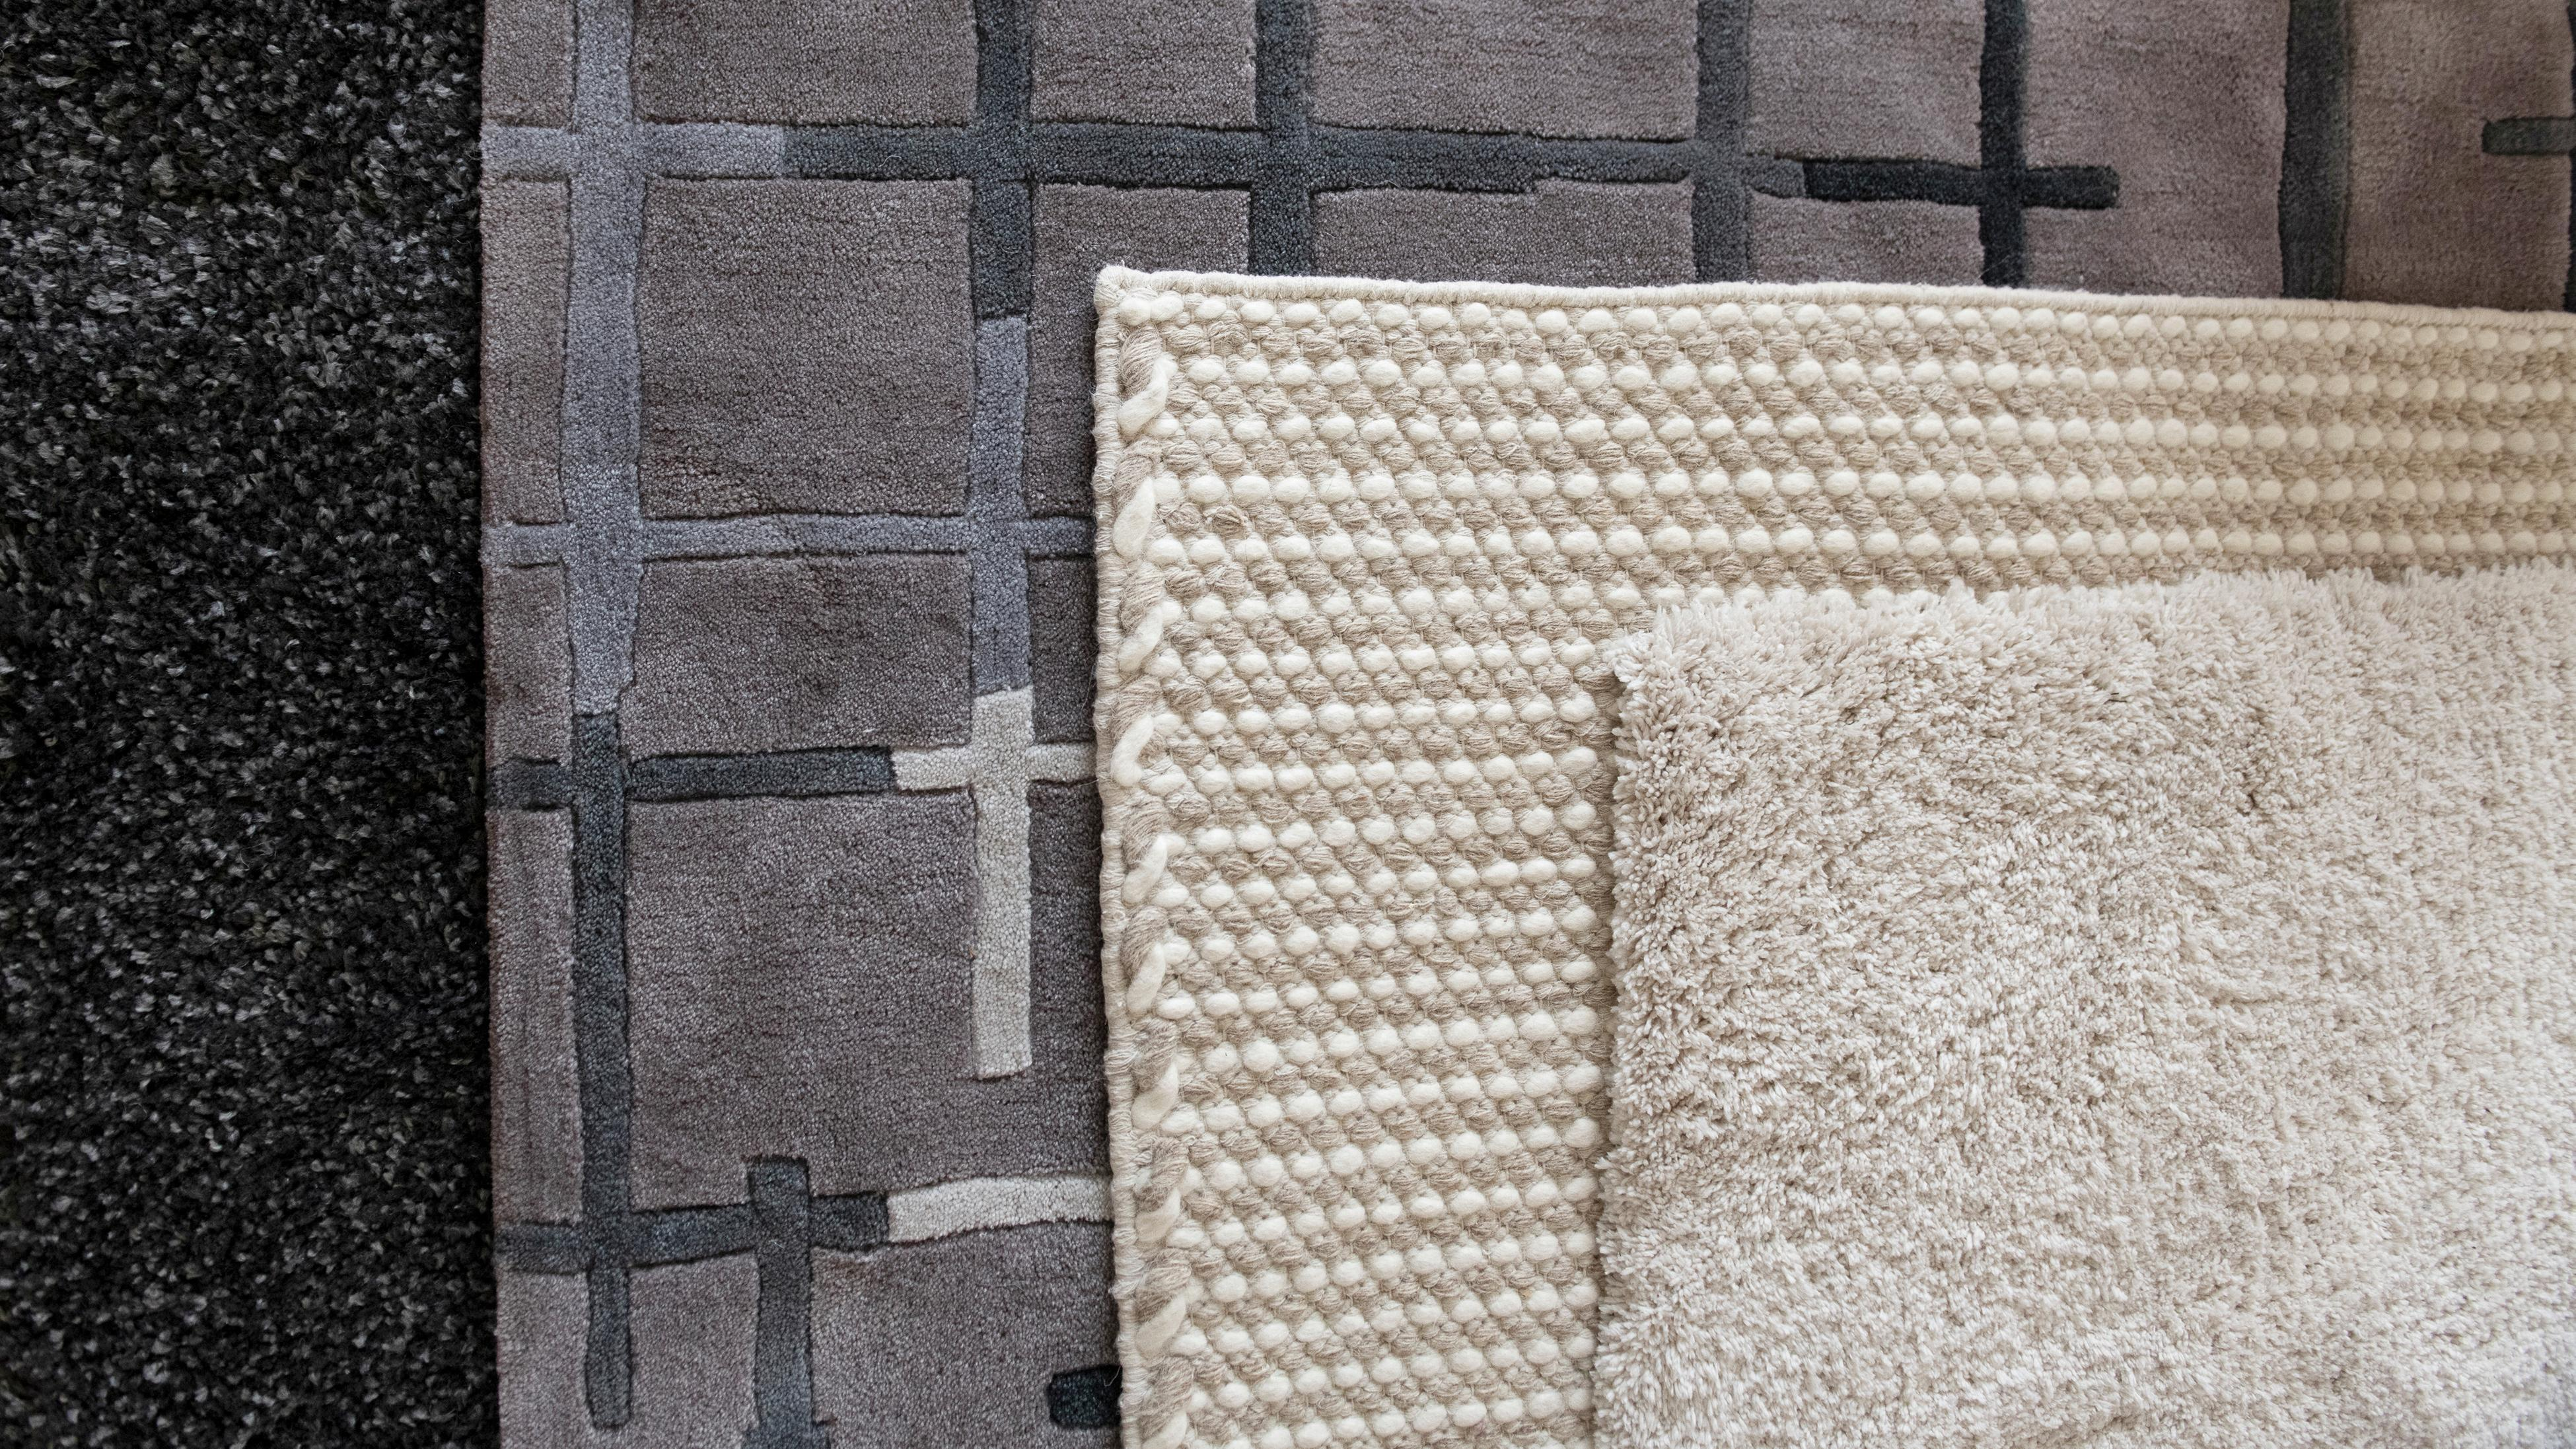 Three different types of rug.